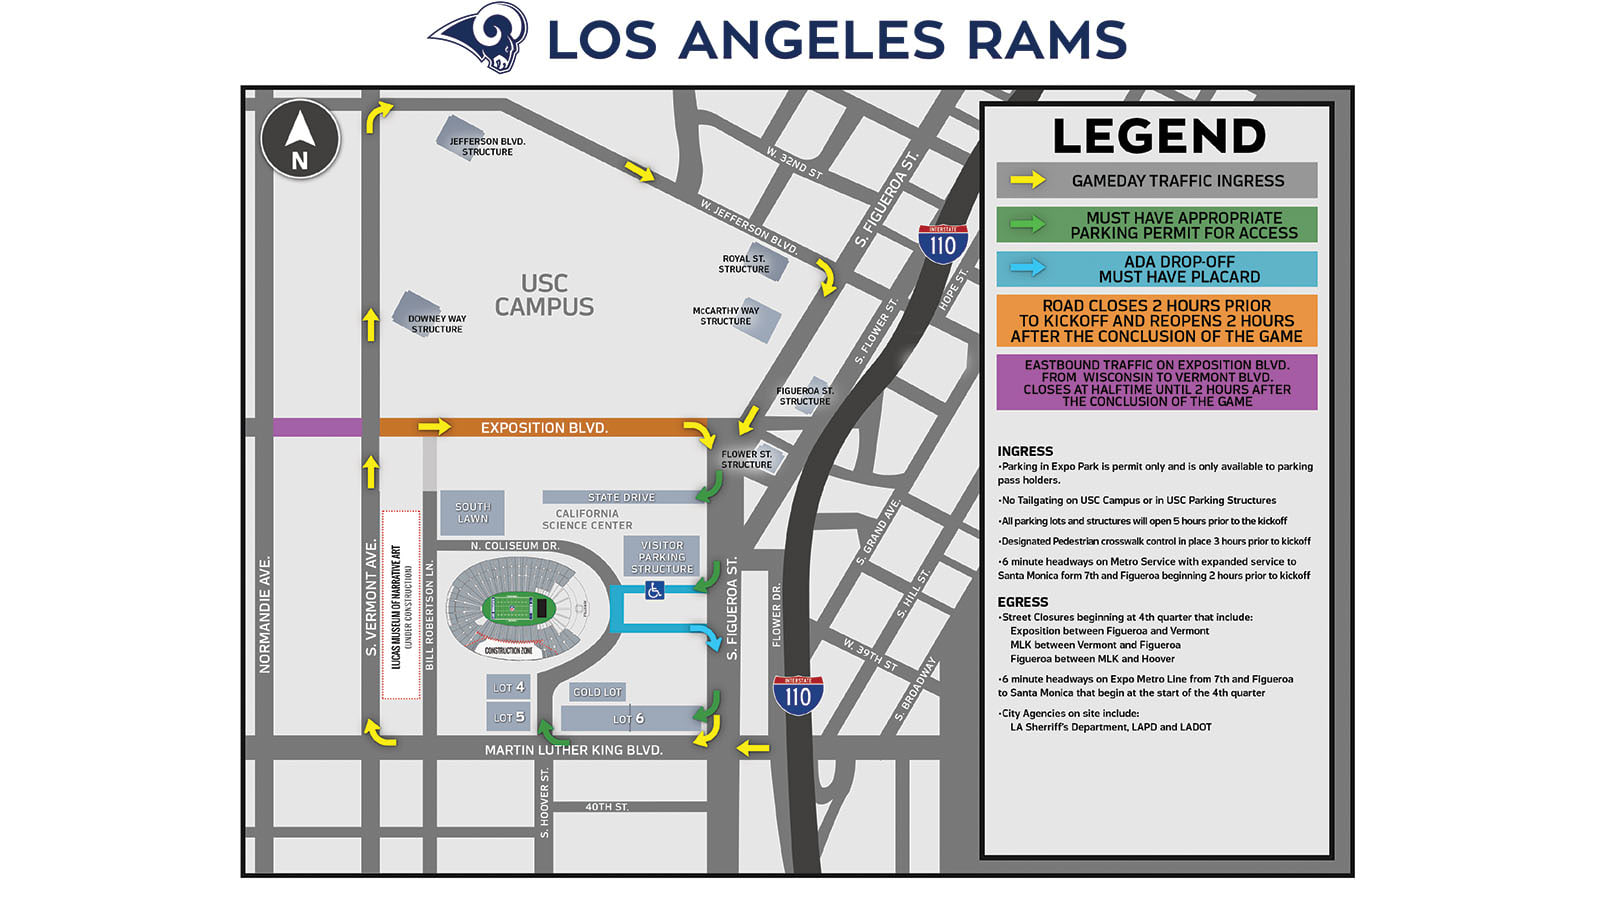 Rams Gameday Driving Directions | Los Angeles Rams - therams com